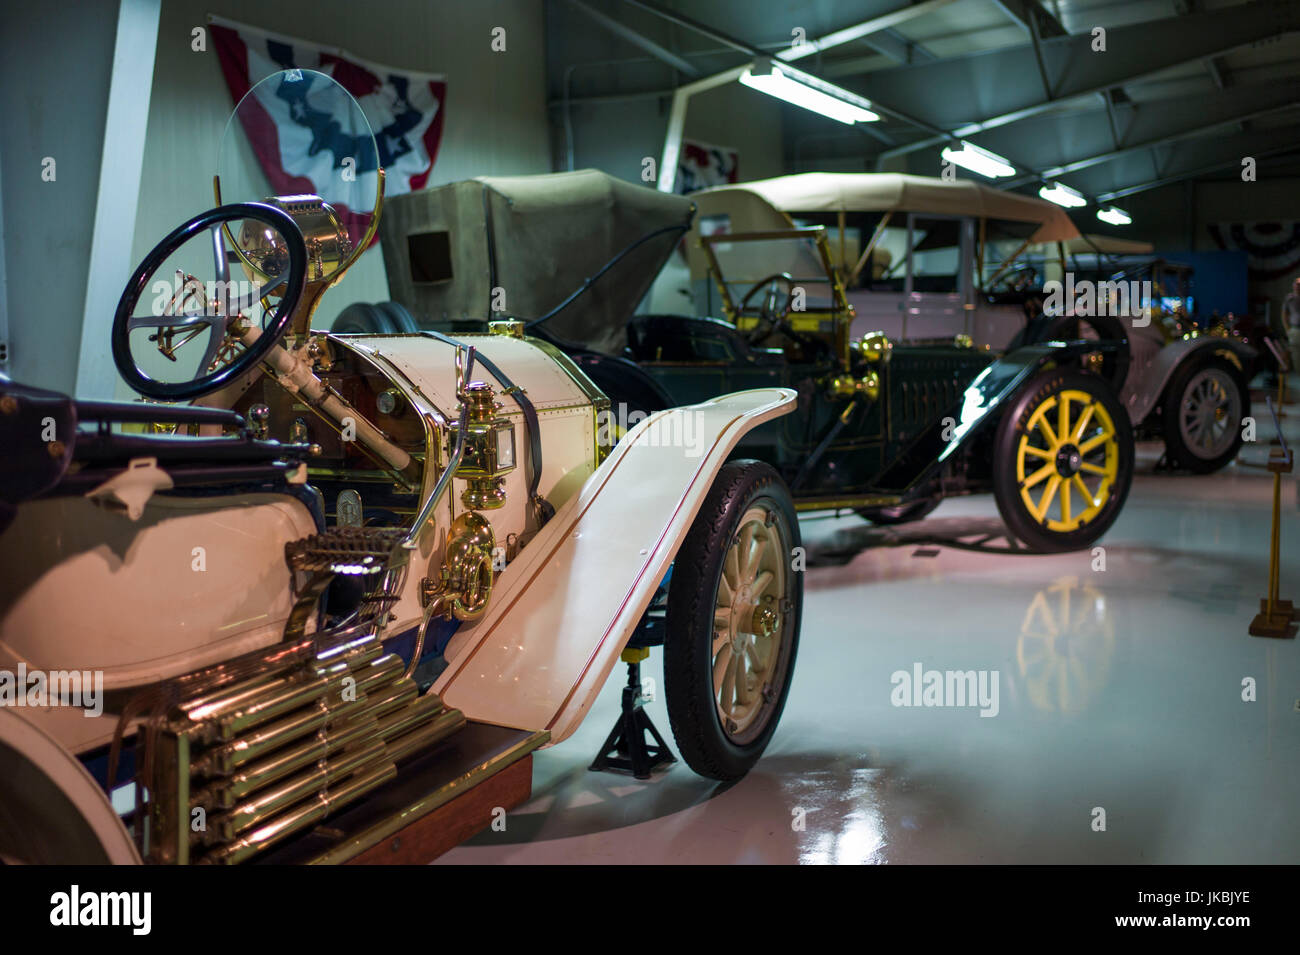 USA, Maine, Mt. Desert Island, Seal Cove, Seal Cove Auto Museum, 1910 Stoddard-Dayton - Stock Image